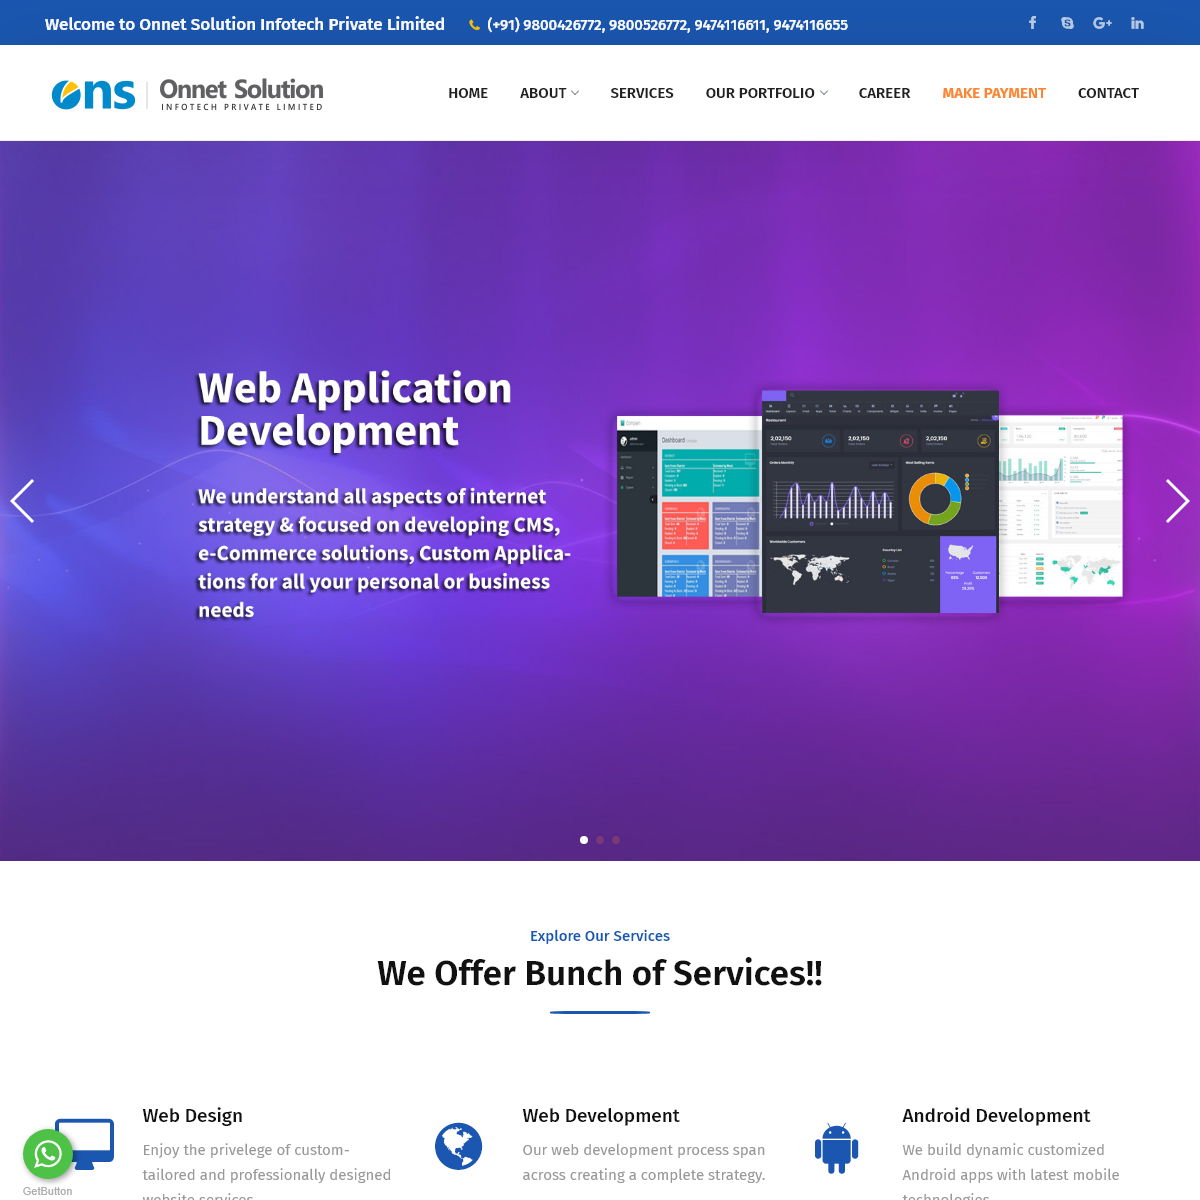 Onnet Solution Infotech Private Limited - Web Design, Development & Android Development Company in West Bengal